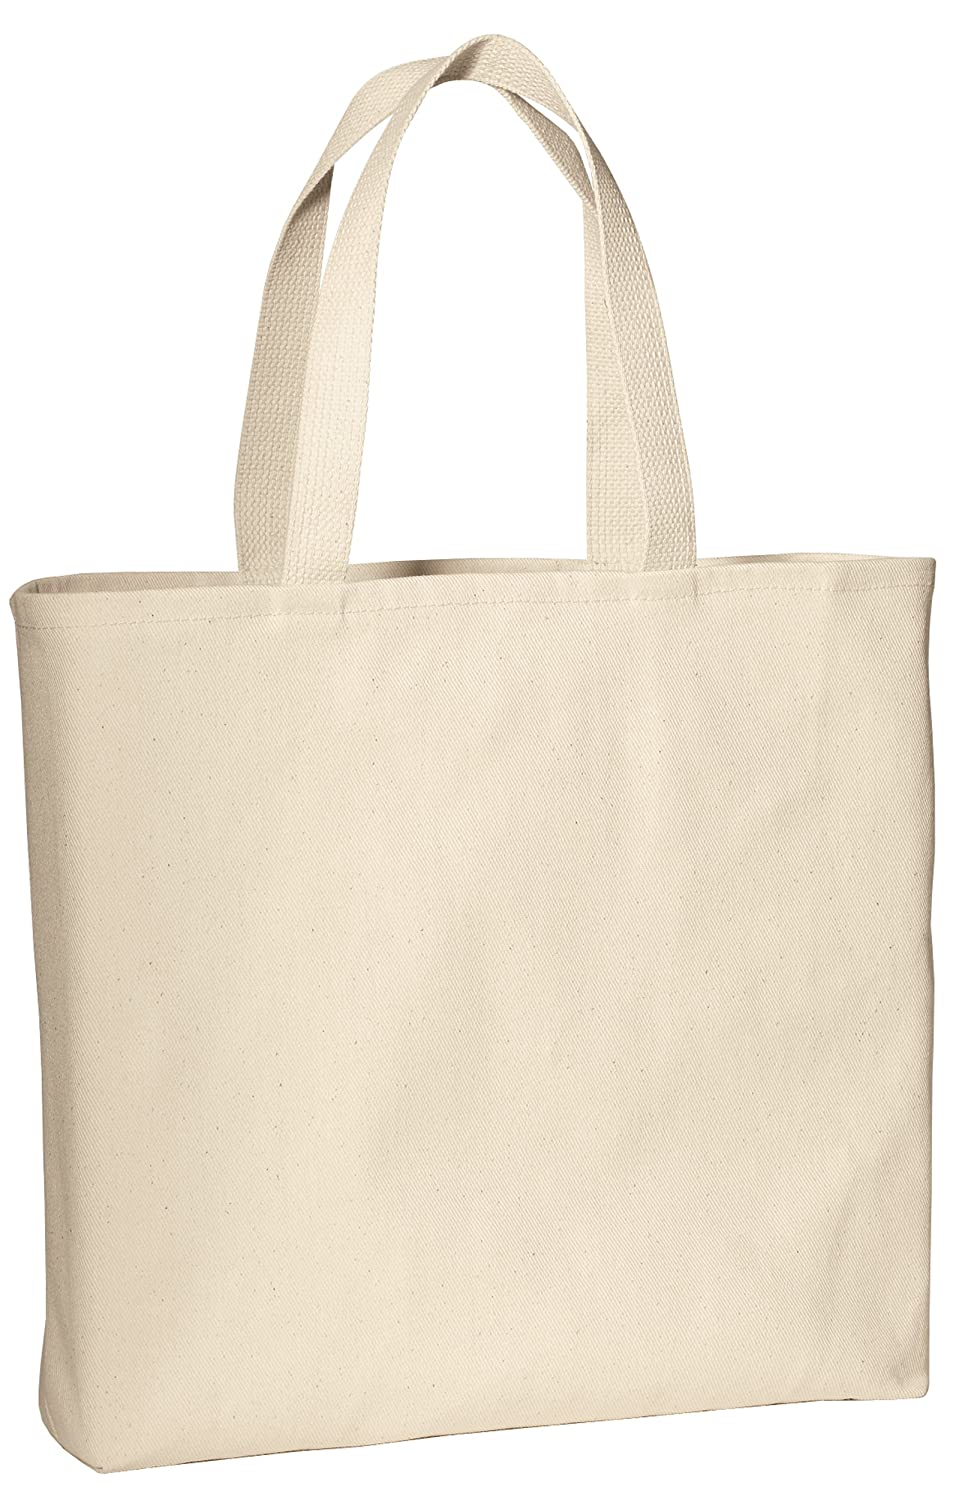 Durable 100% Cotton Twill Convention Wholesale Tote Bags w  Bottom Gusset -  Grocery Shopping Bags 6b7a6744931fc